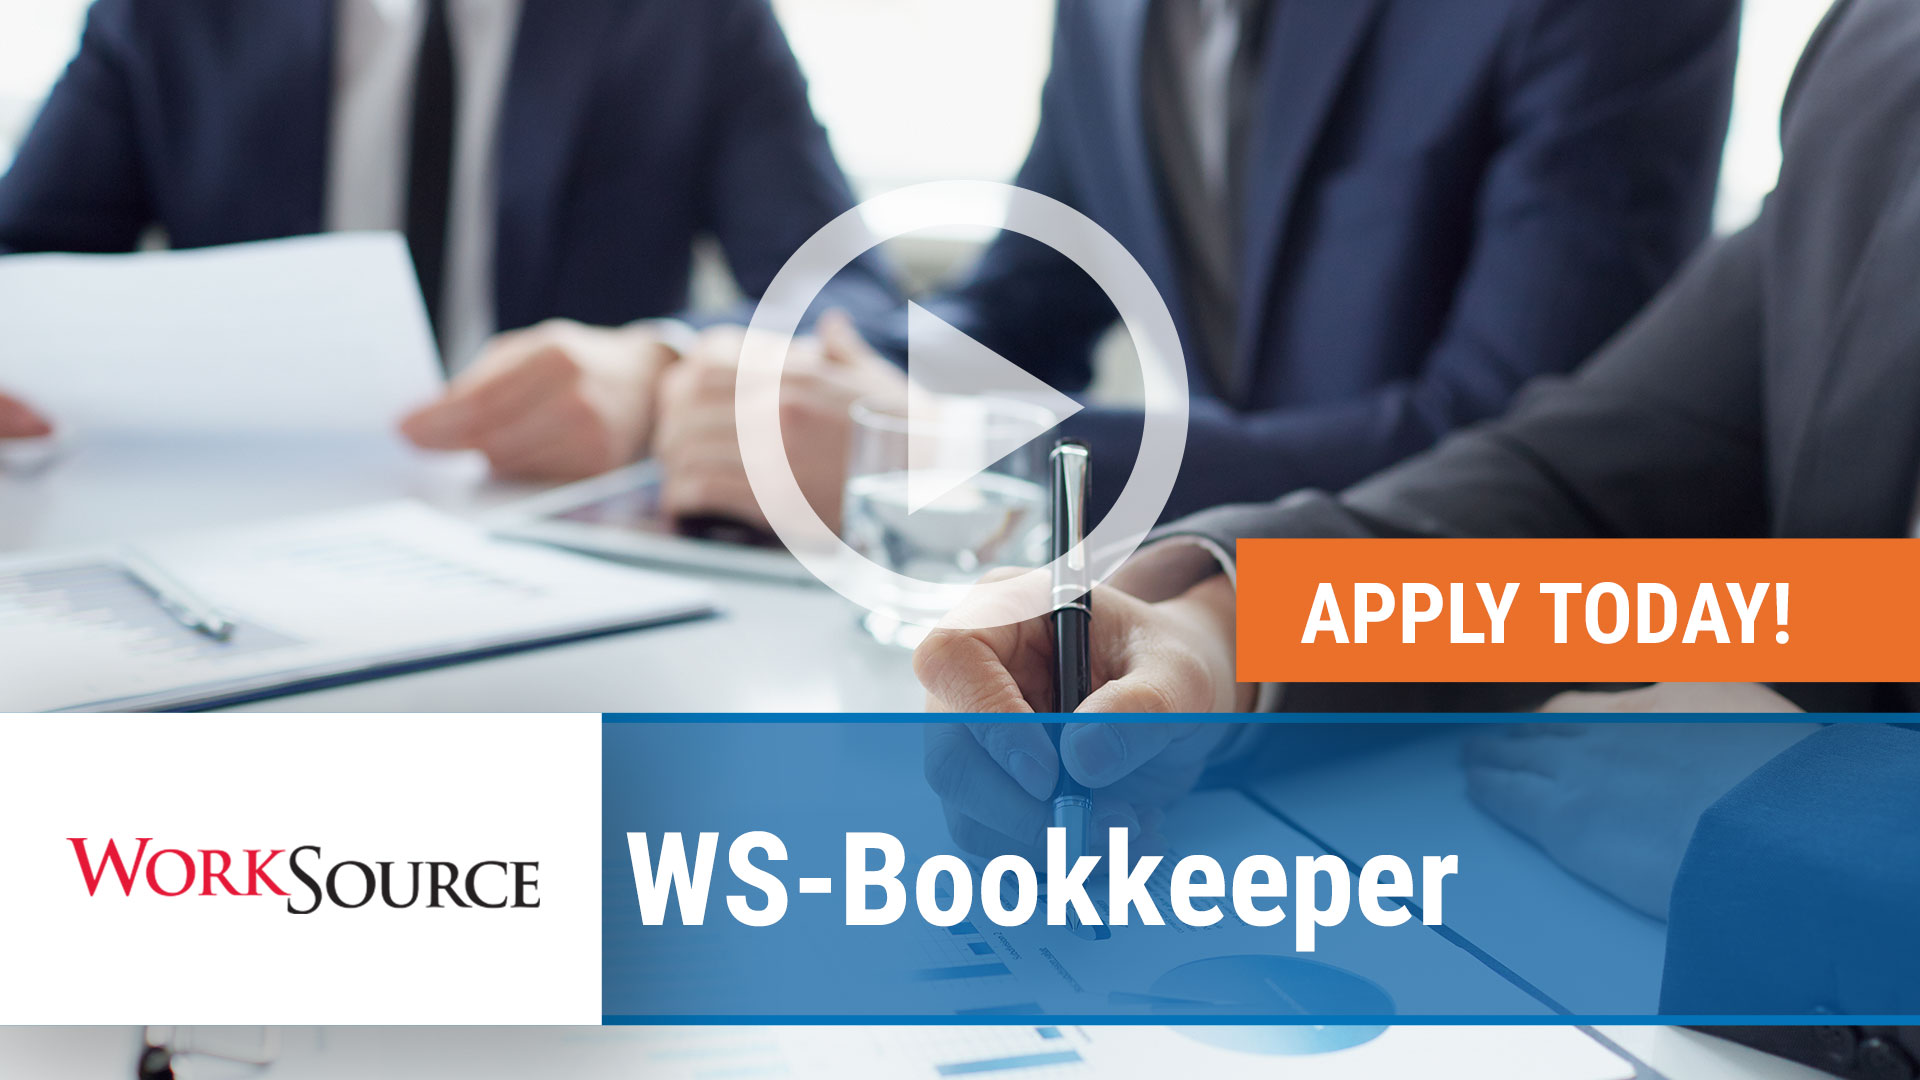 Watch our careers video for available job opening WS Bookkeeper in Fayetteville, Arkansas